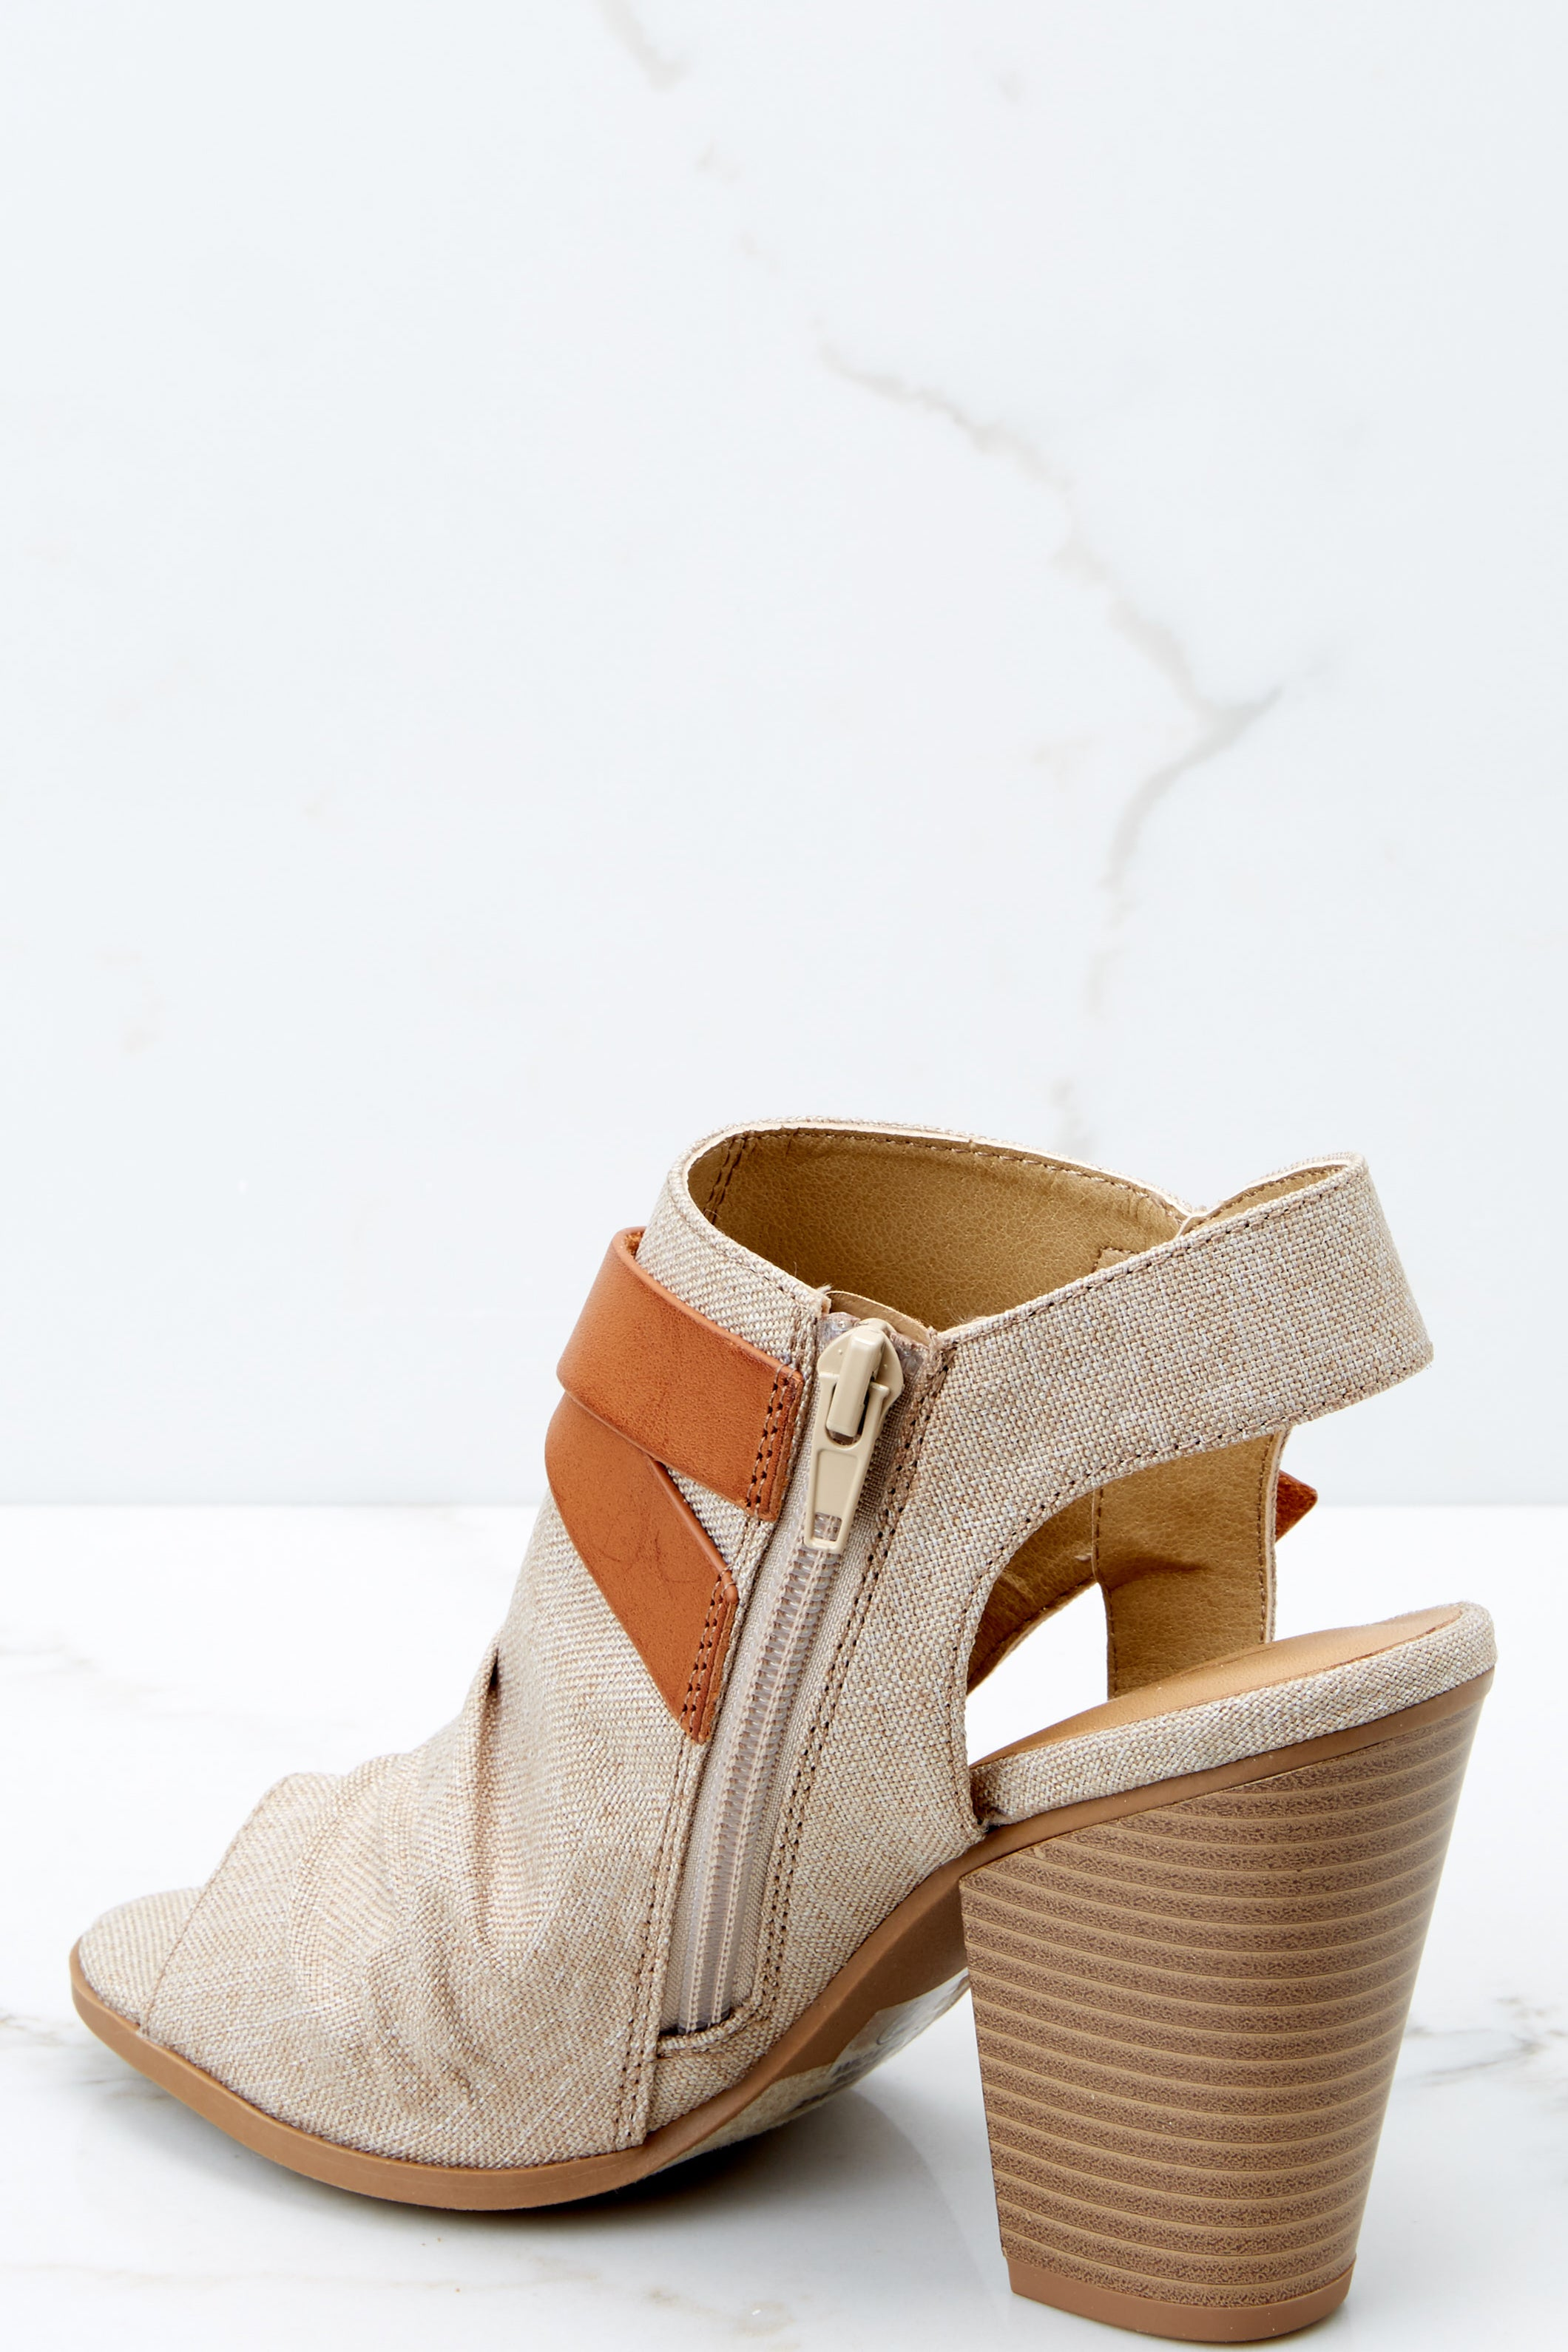 Undeniable You Taupe Peep Toe Ankle Boots